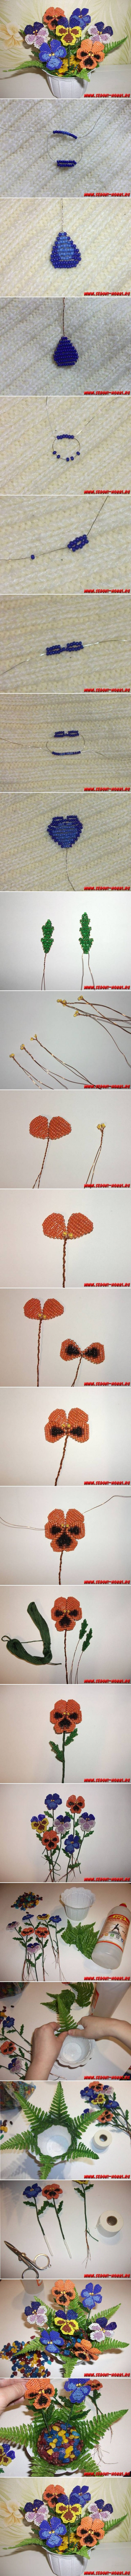 How To Make Beads Pansy Flower step by step DIY tutorial instructions